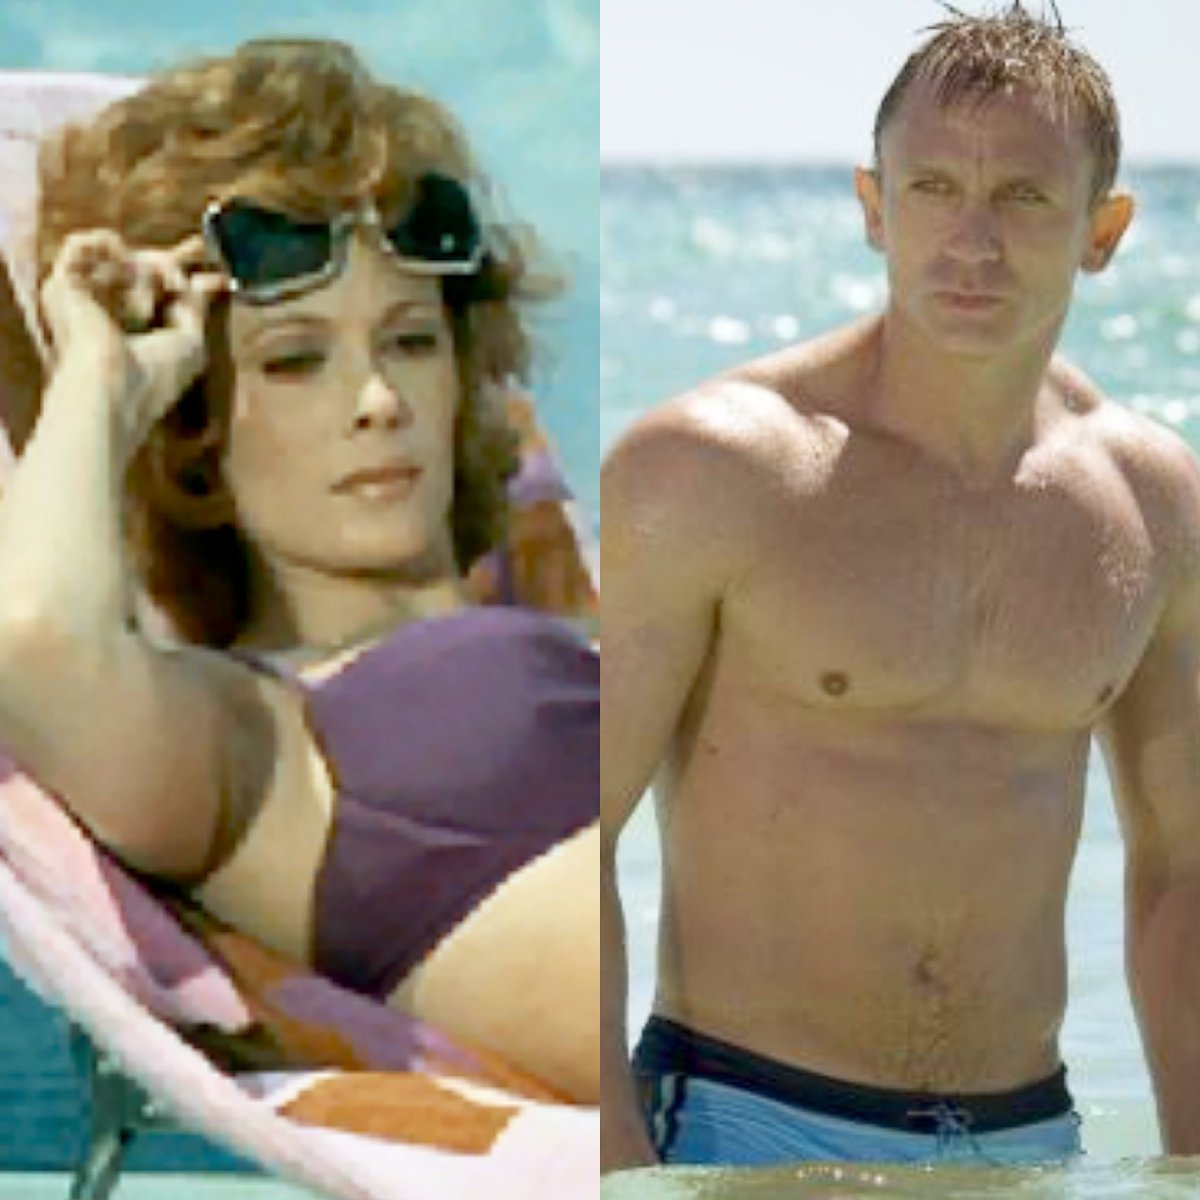 We associate Bond films with what #LauraMulvey called the #malegaze but my re-viewings have revealed that, well before Daniel Craig walked out of the ocean in #CasinoRoyale, there were many instances across the series of female/homosexual male gaze. #malegazetheory https://t.co/dYMMGd4cGS